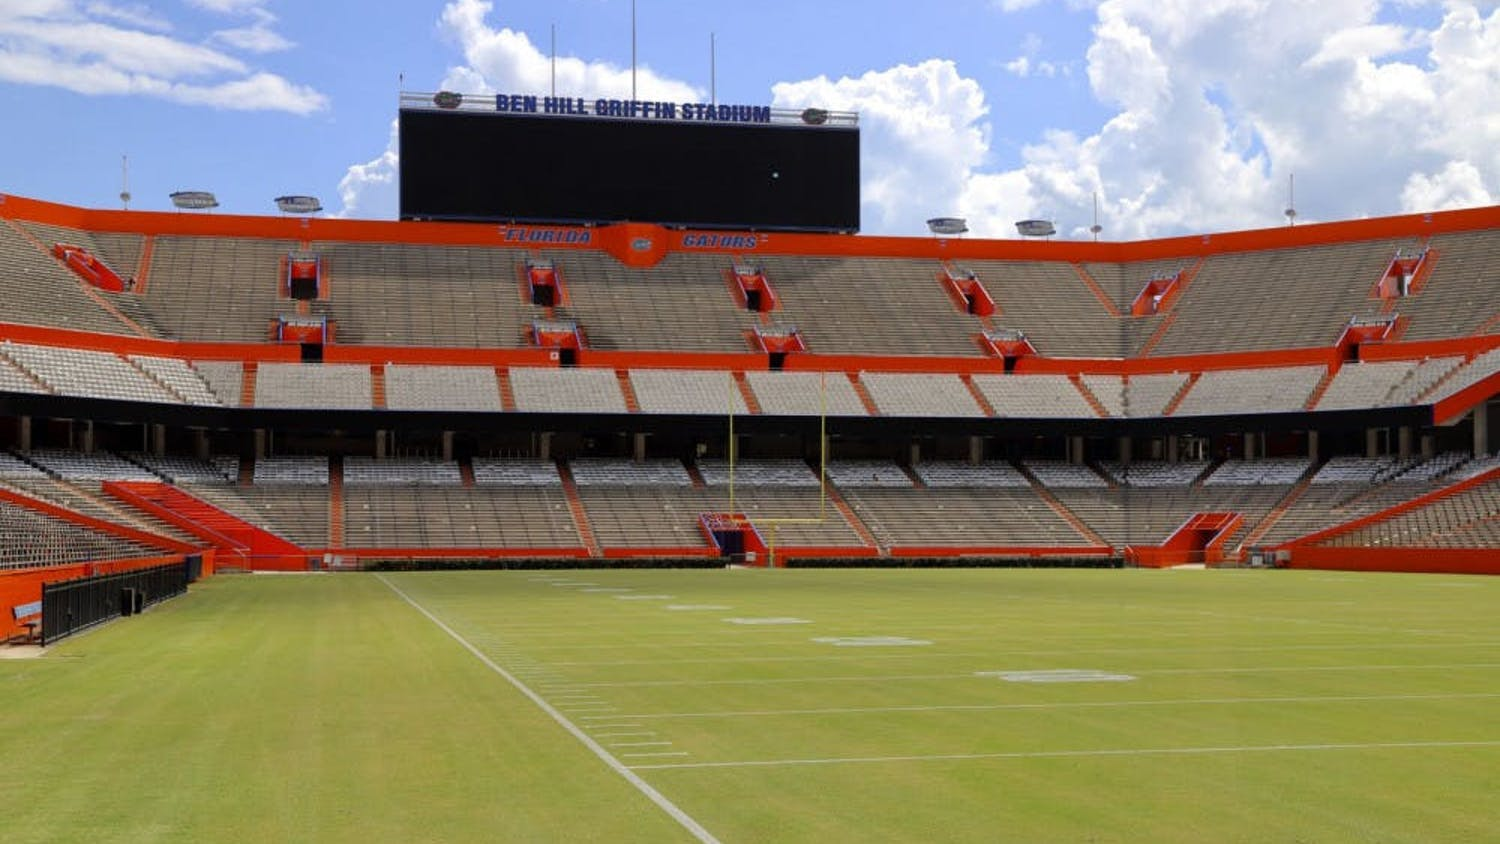 The SEC announced Wednesday it would grant The University of Florida, as well as its 13 other member universities, $23 million to compensate for lost revenue from COVID-19